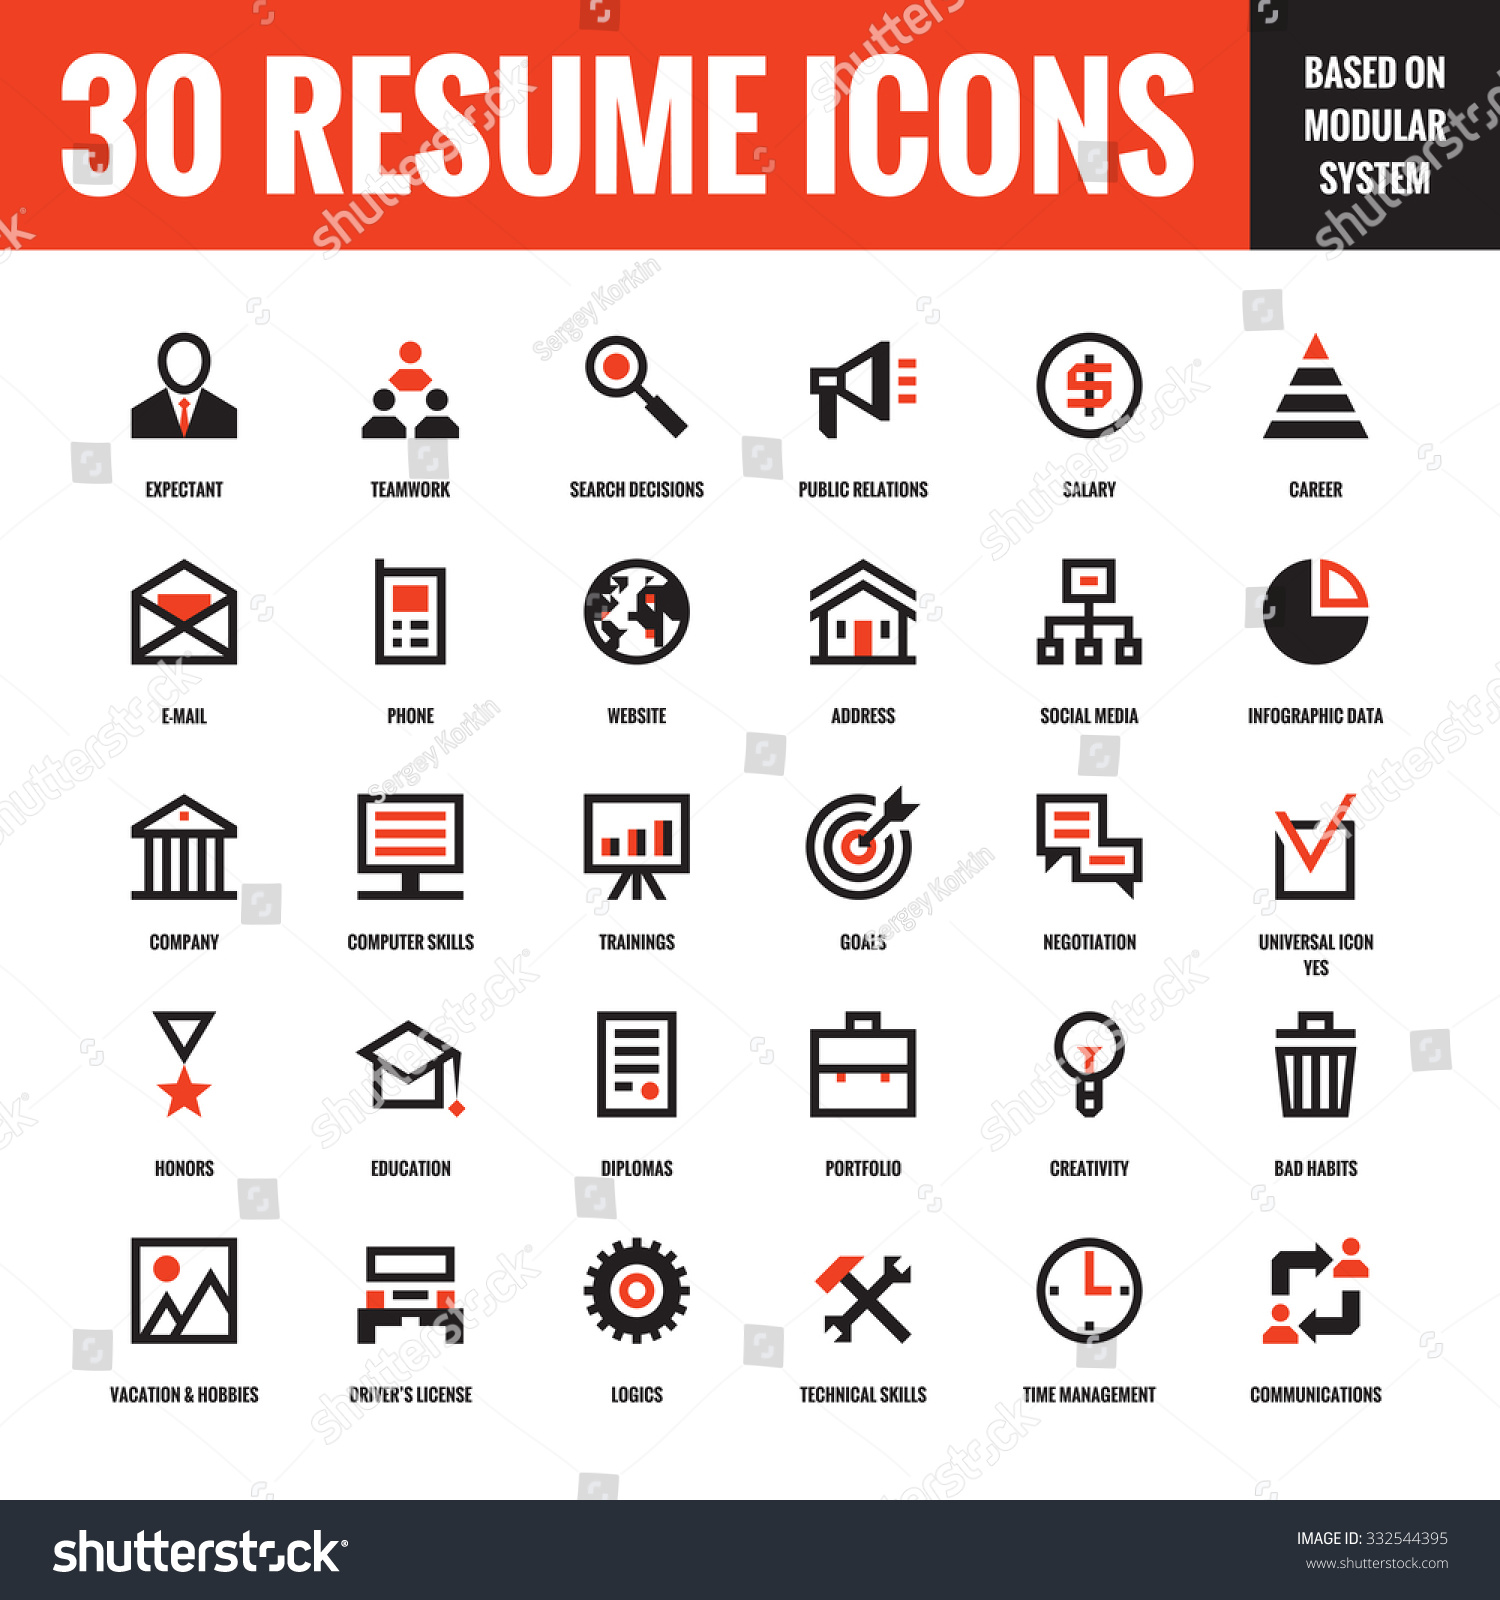 30 resume creative vector icons based on modular system set of